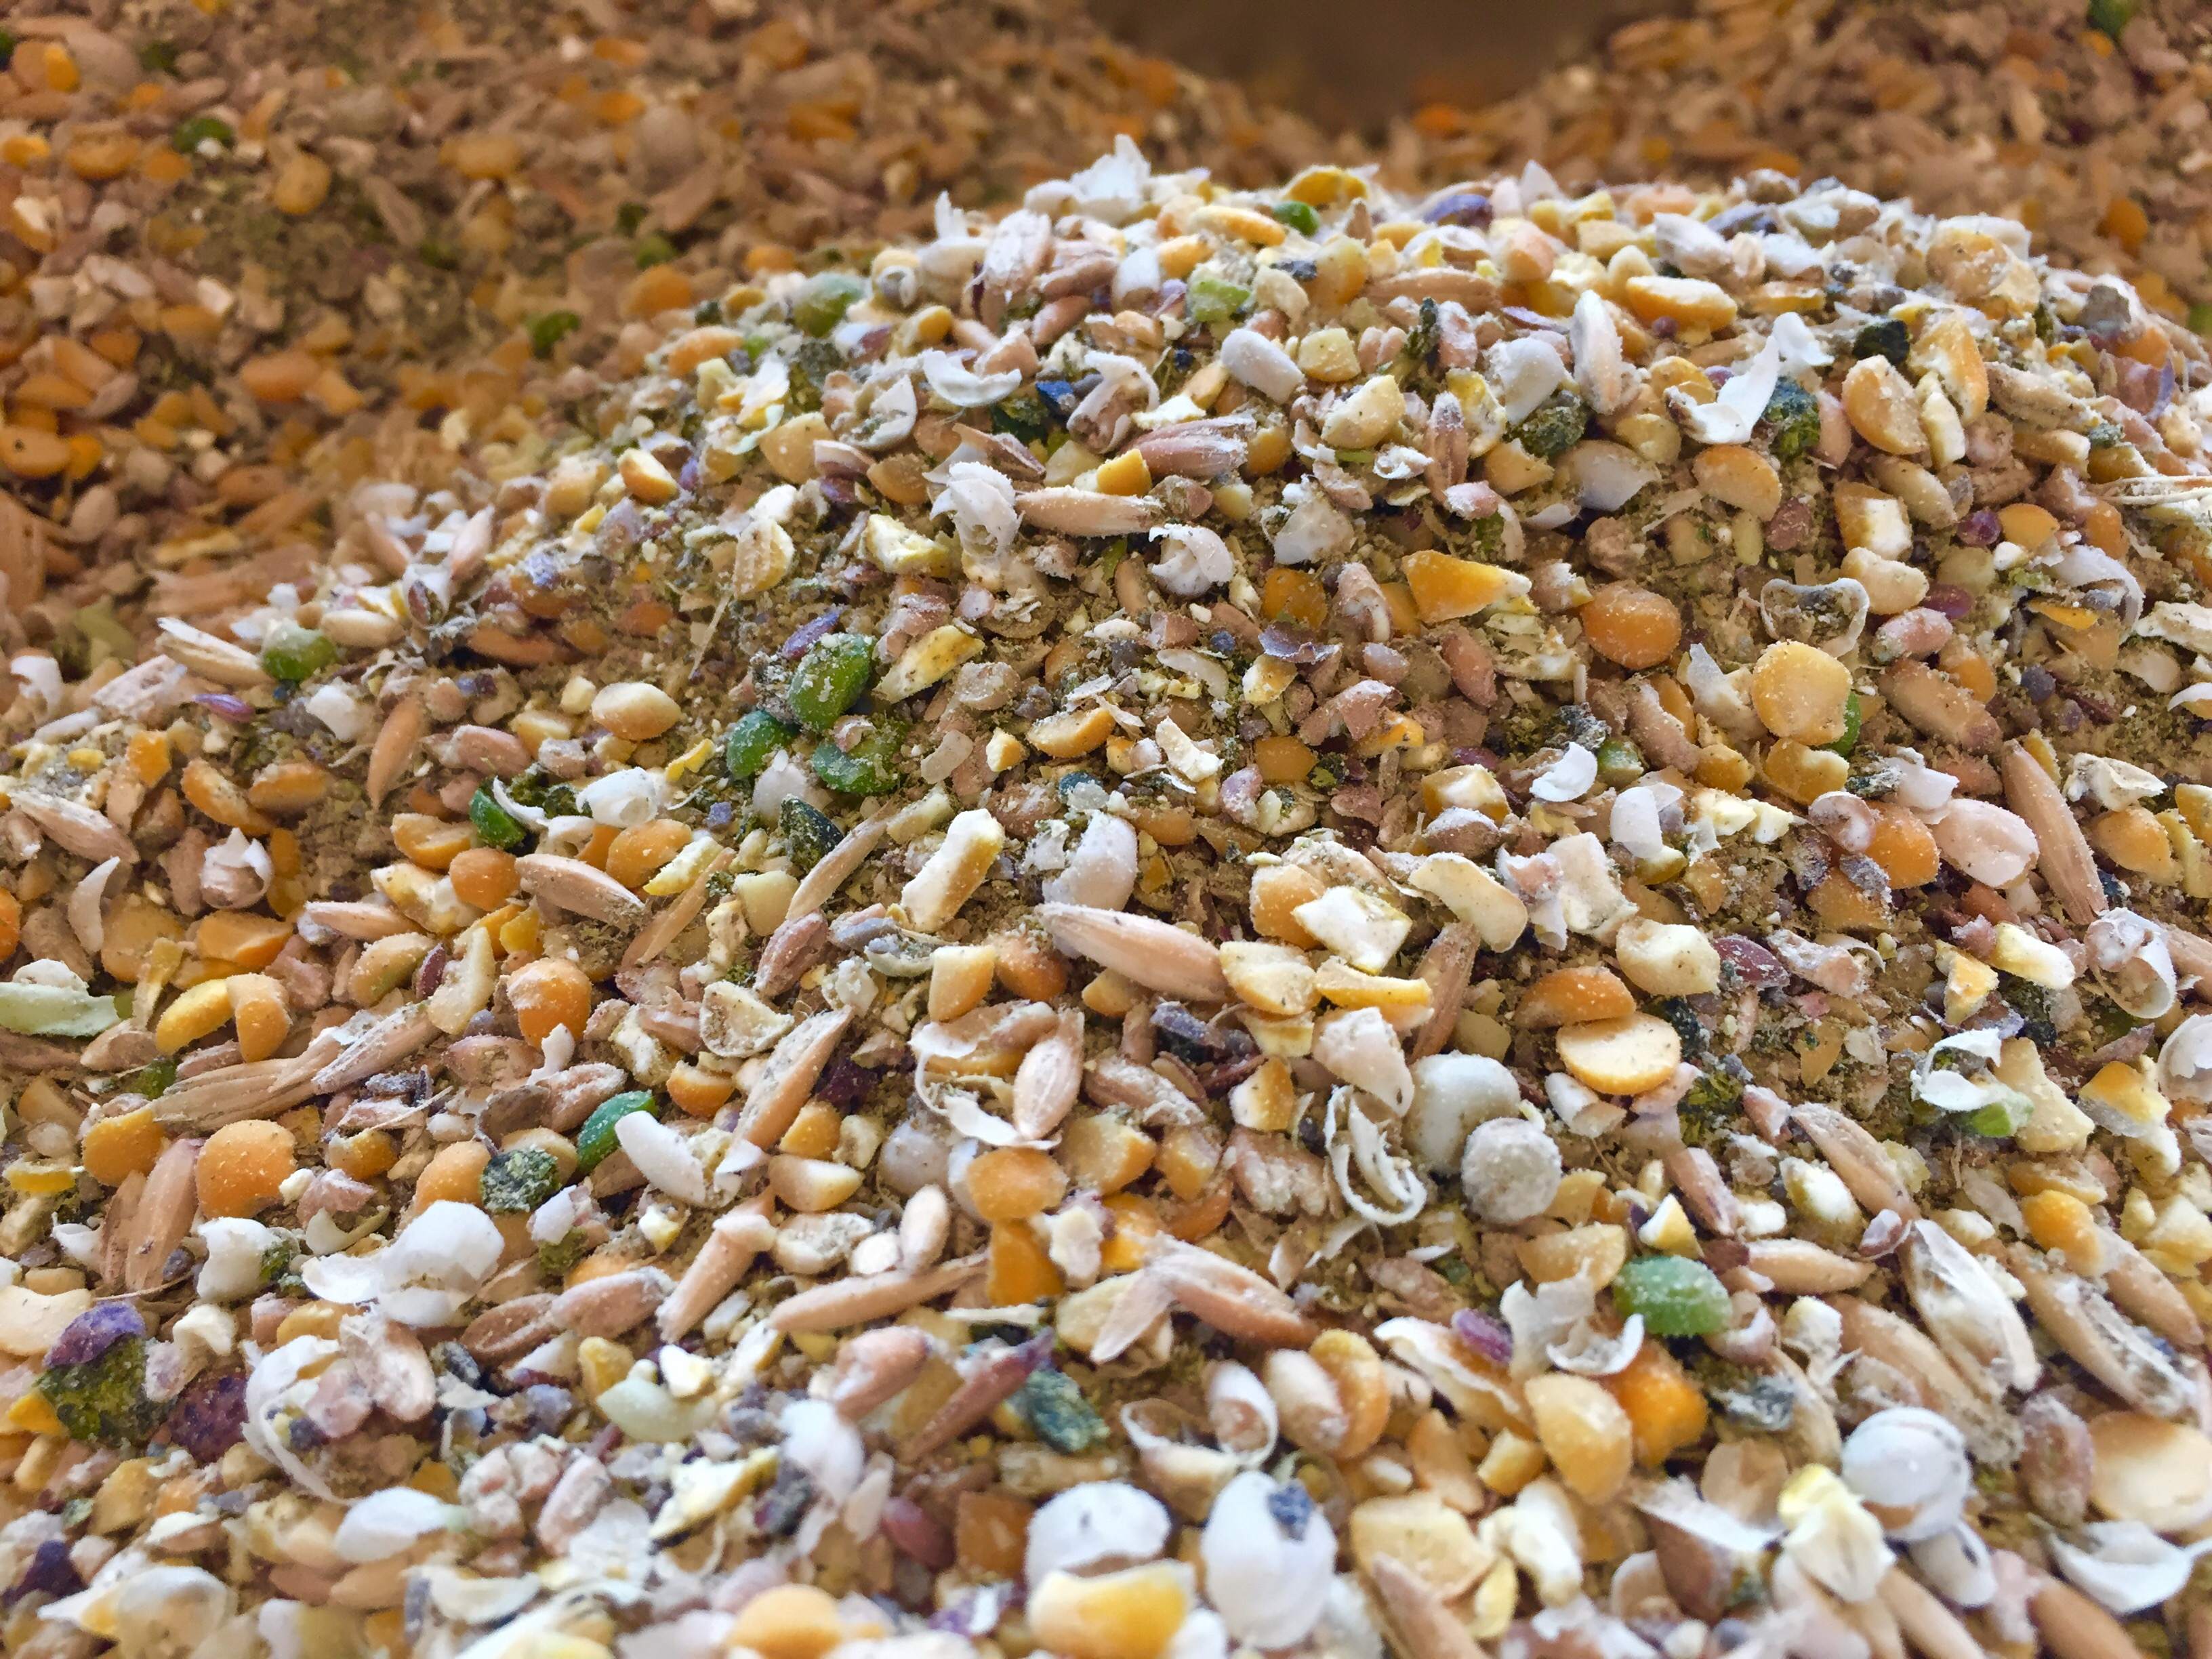 Feed: Layer Chicken Feed – Soy & Corn Free (50 Lbs)